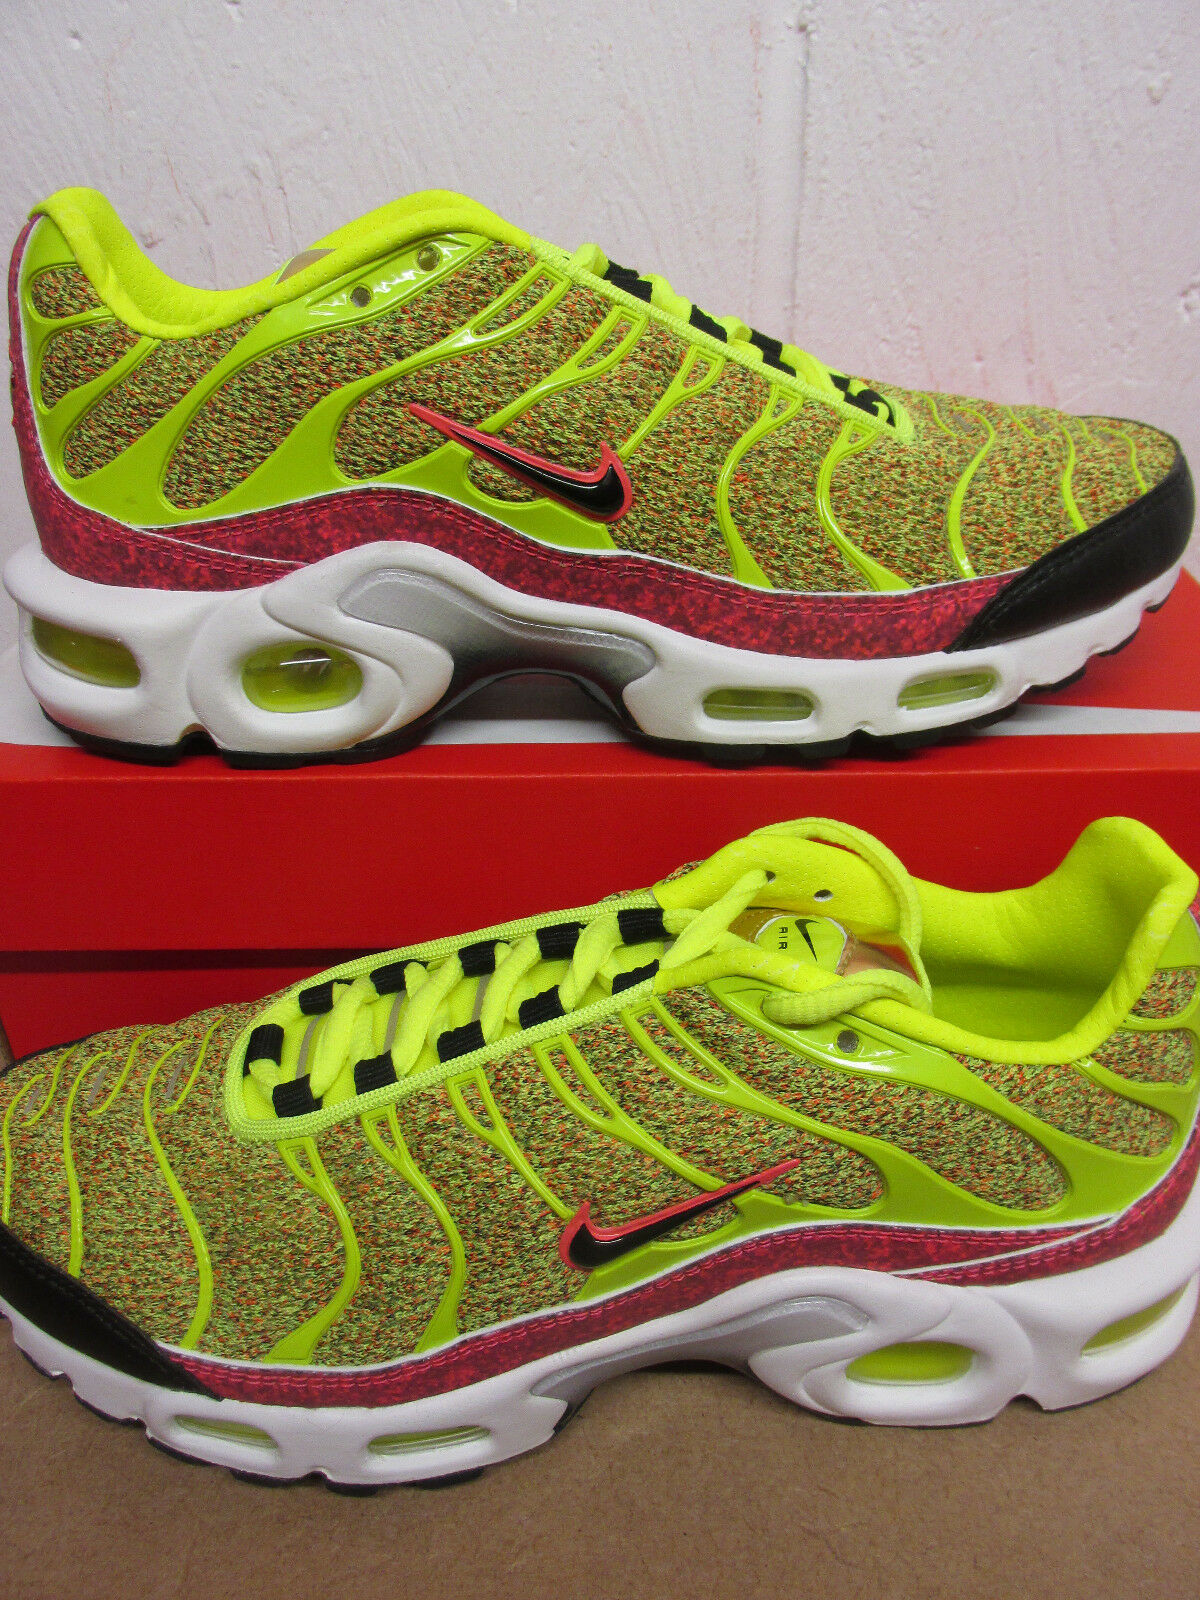 Nike Womens Air Max Plus SE Womens Running Trainers 8622018 700 Sneakers Shoes Seasonal price cuts, discount benefits